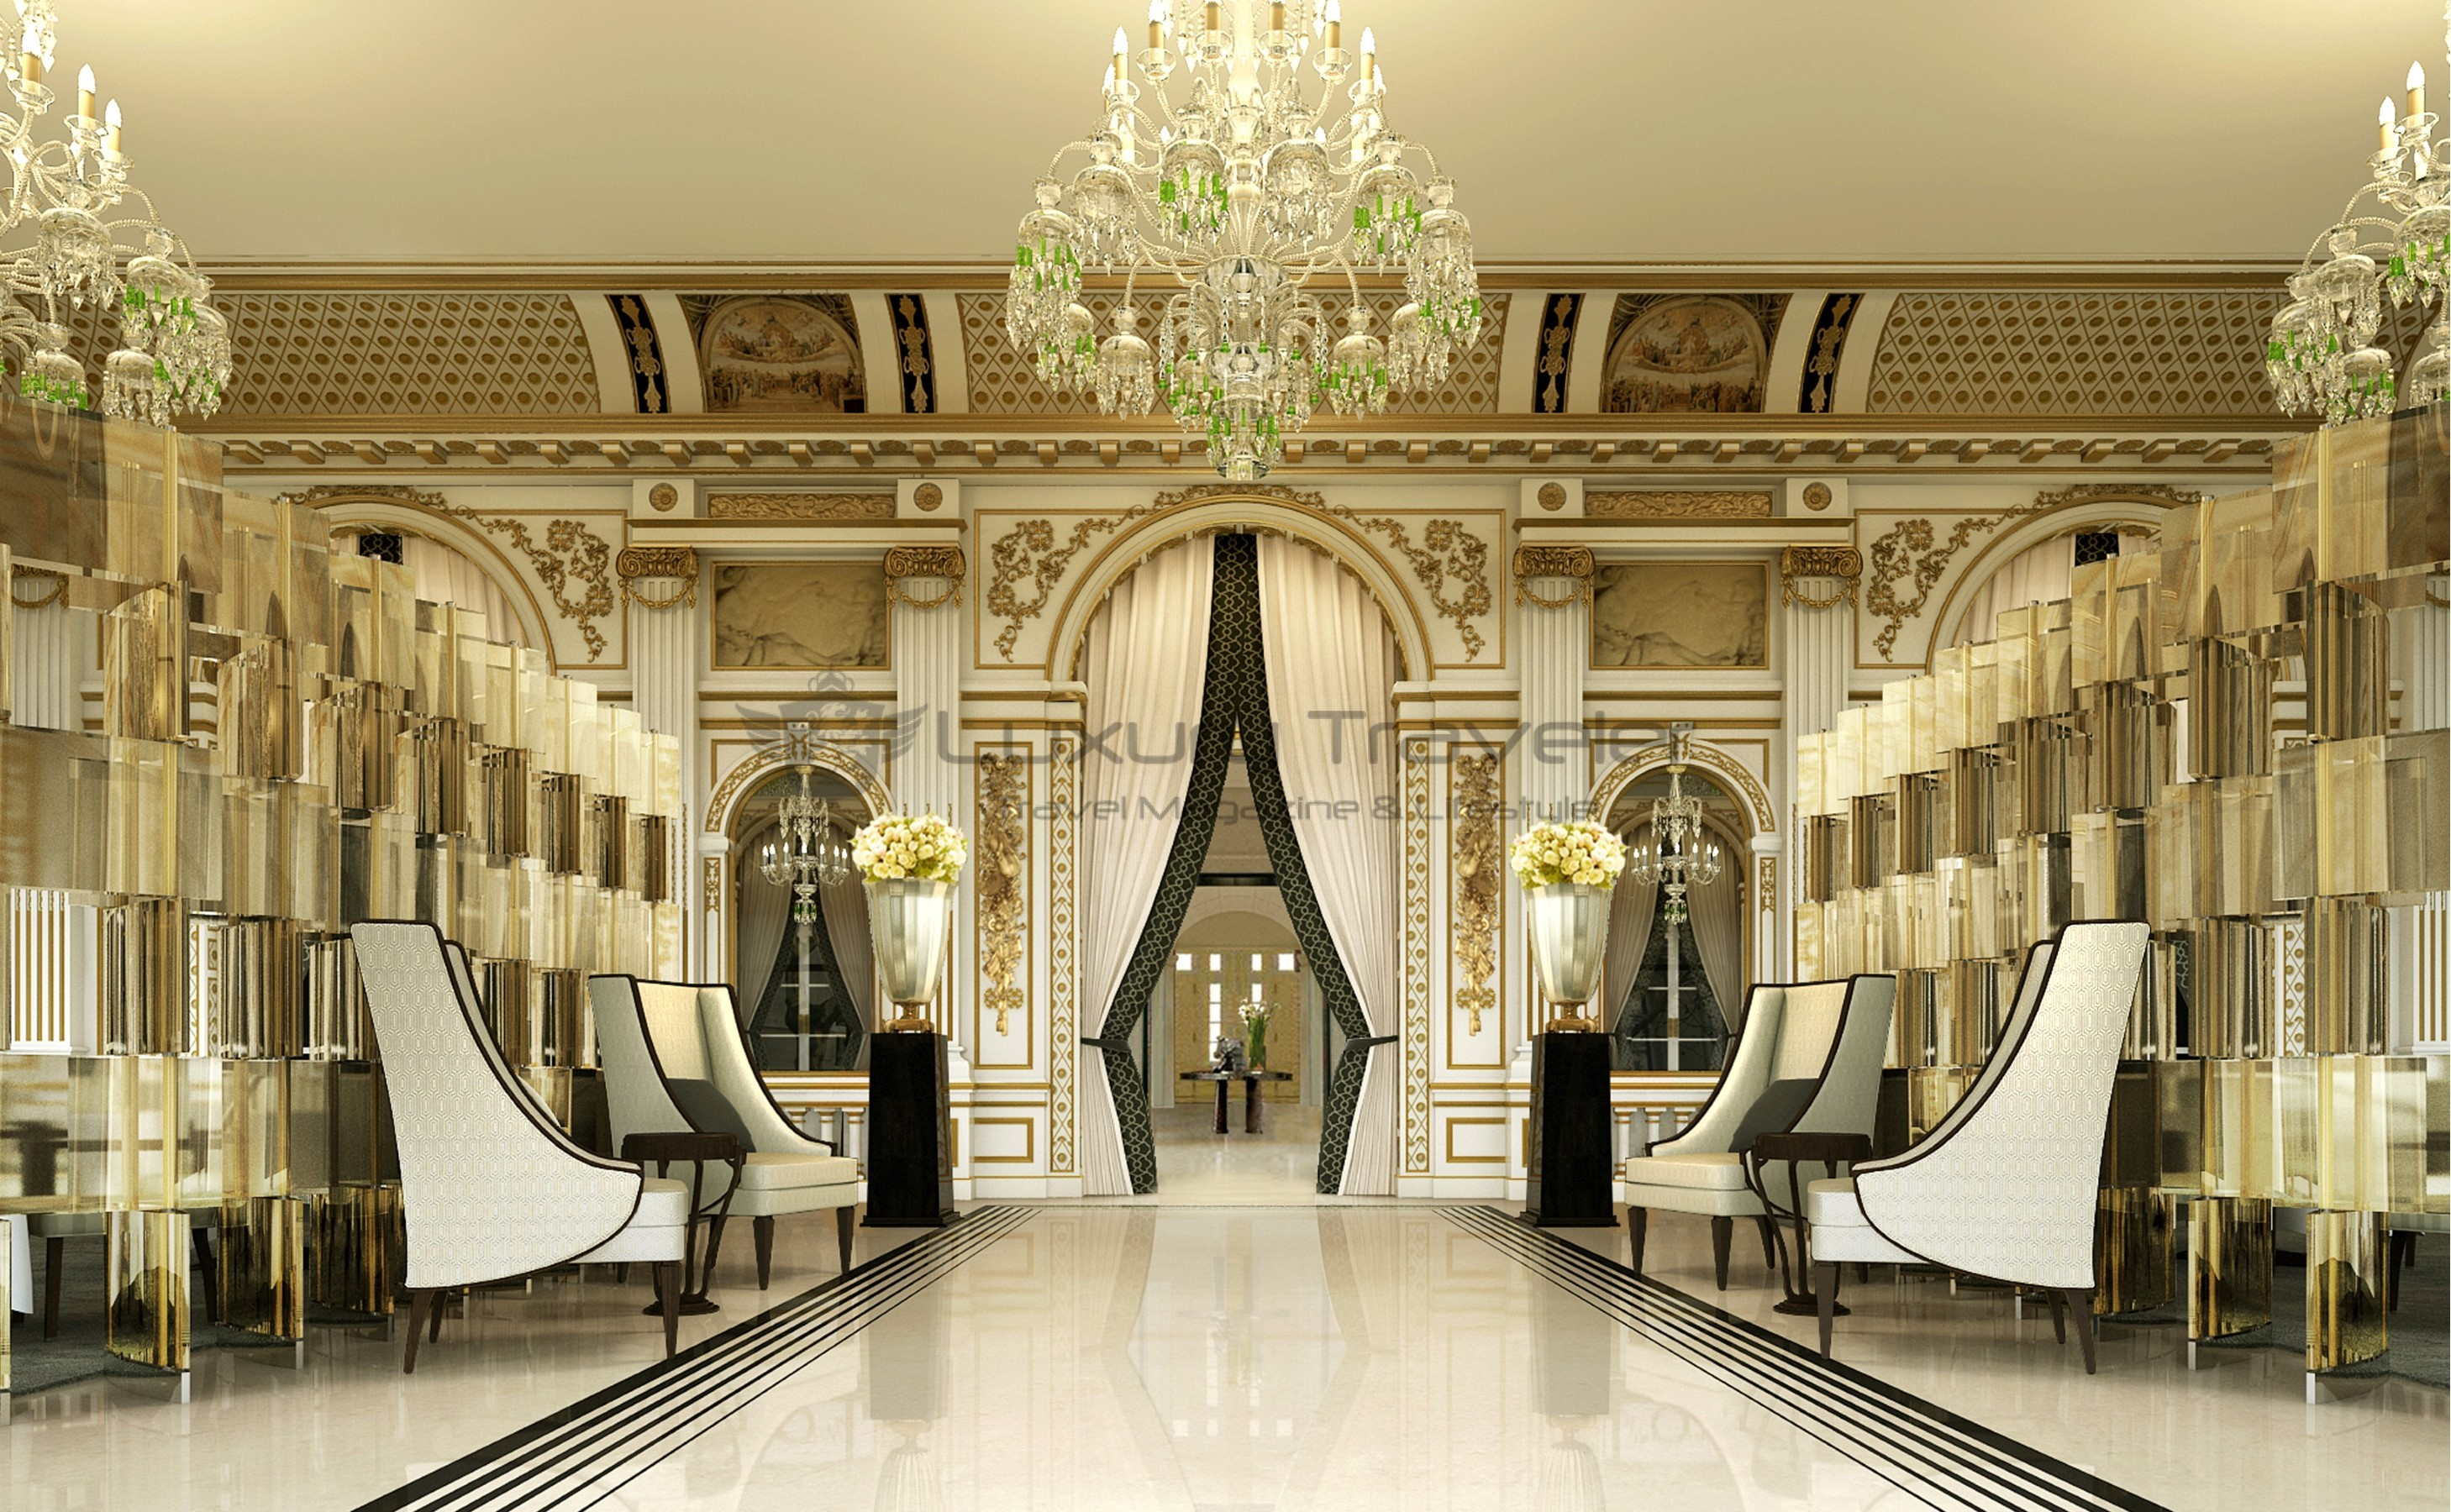 The peninsula luxury 5 star hotel paris luxury traveler for Hotel design france